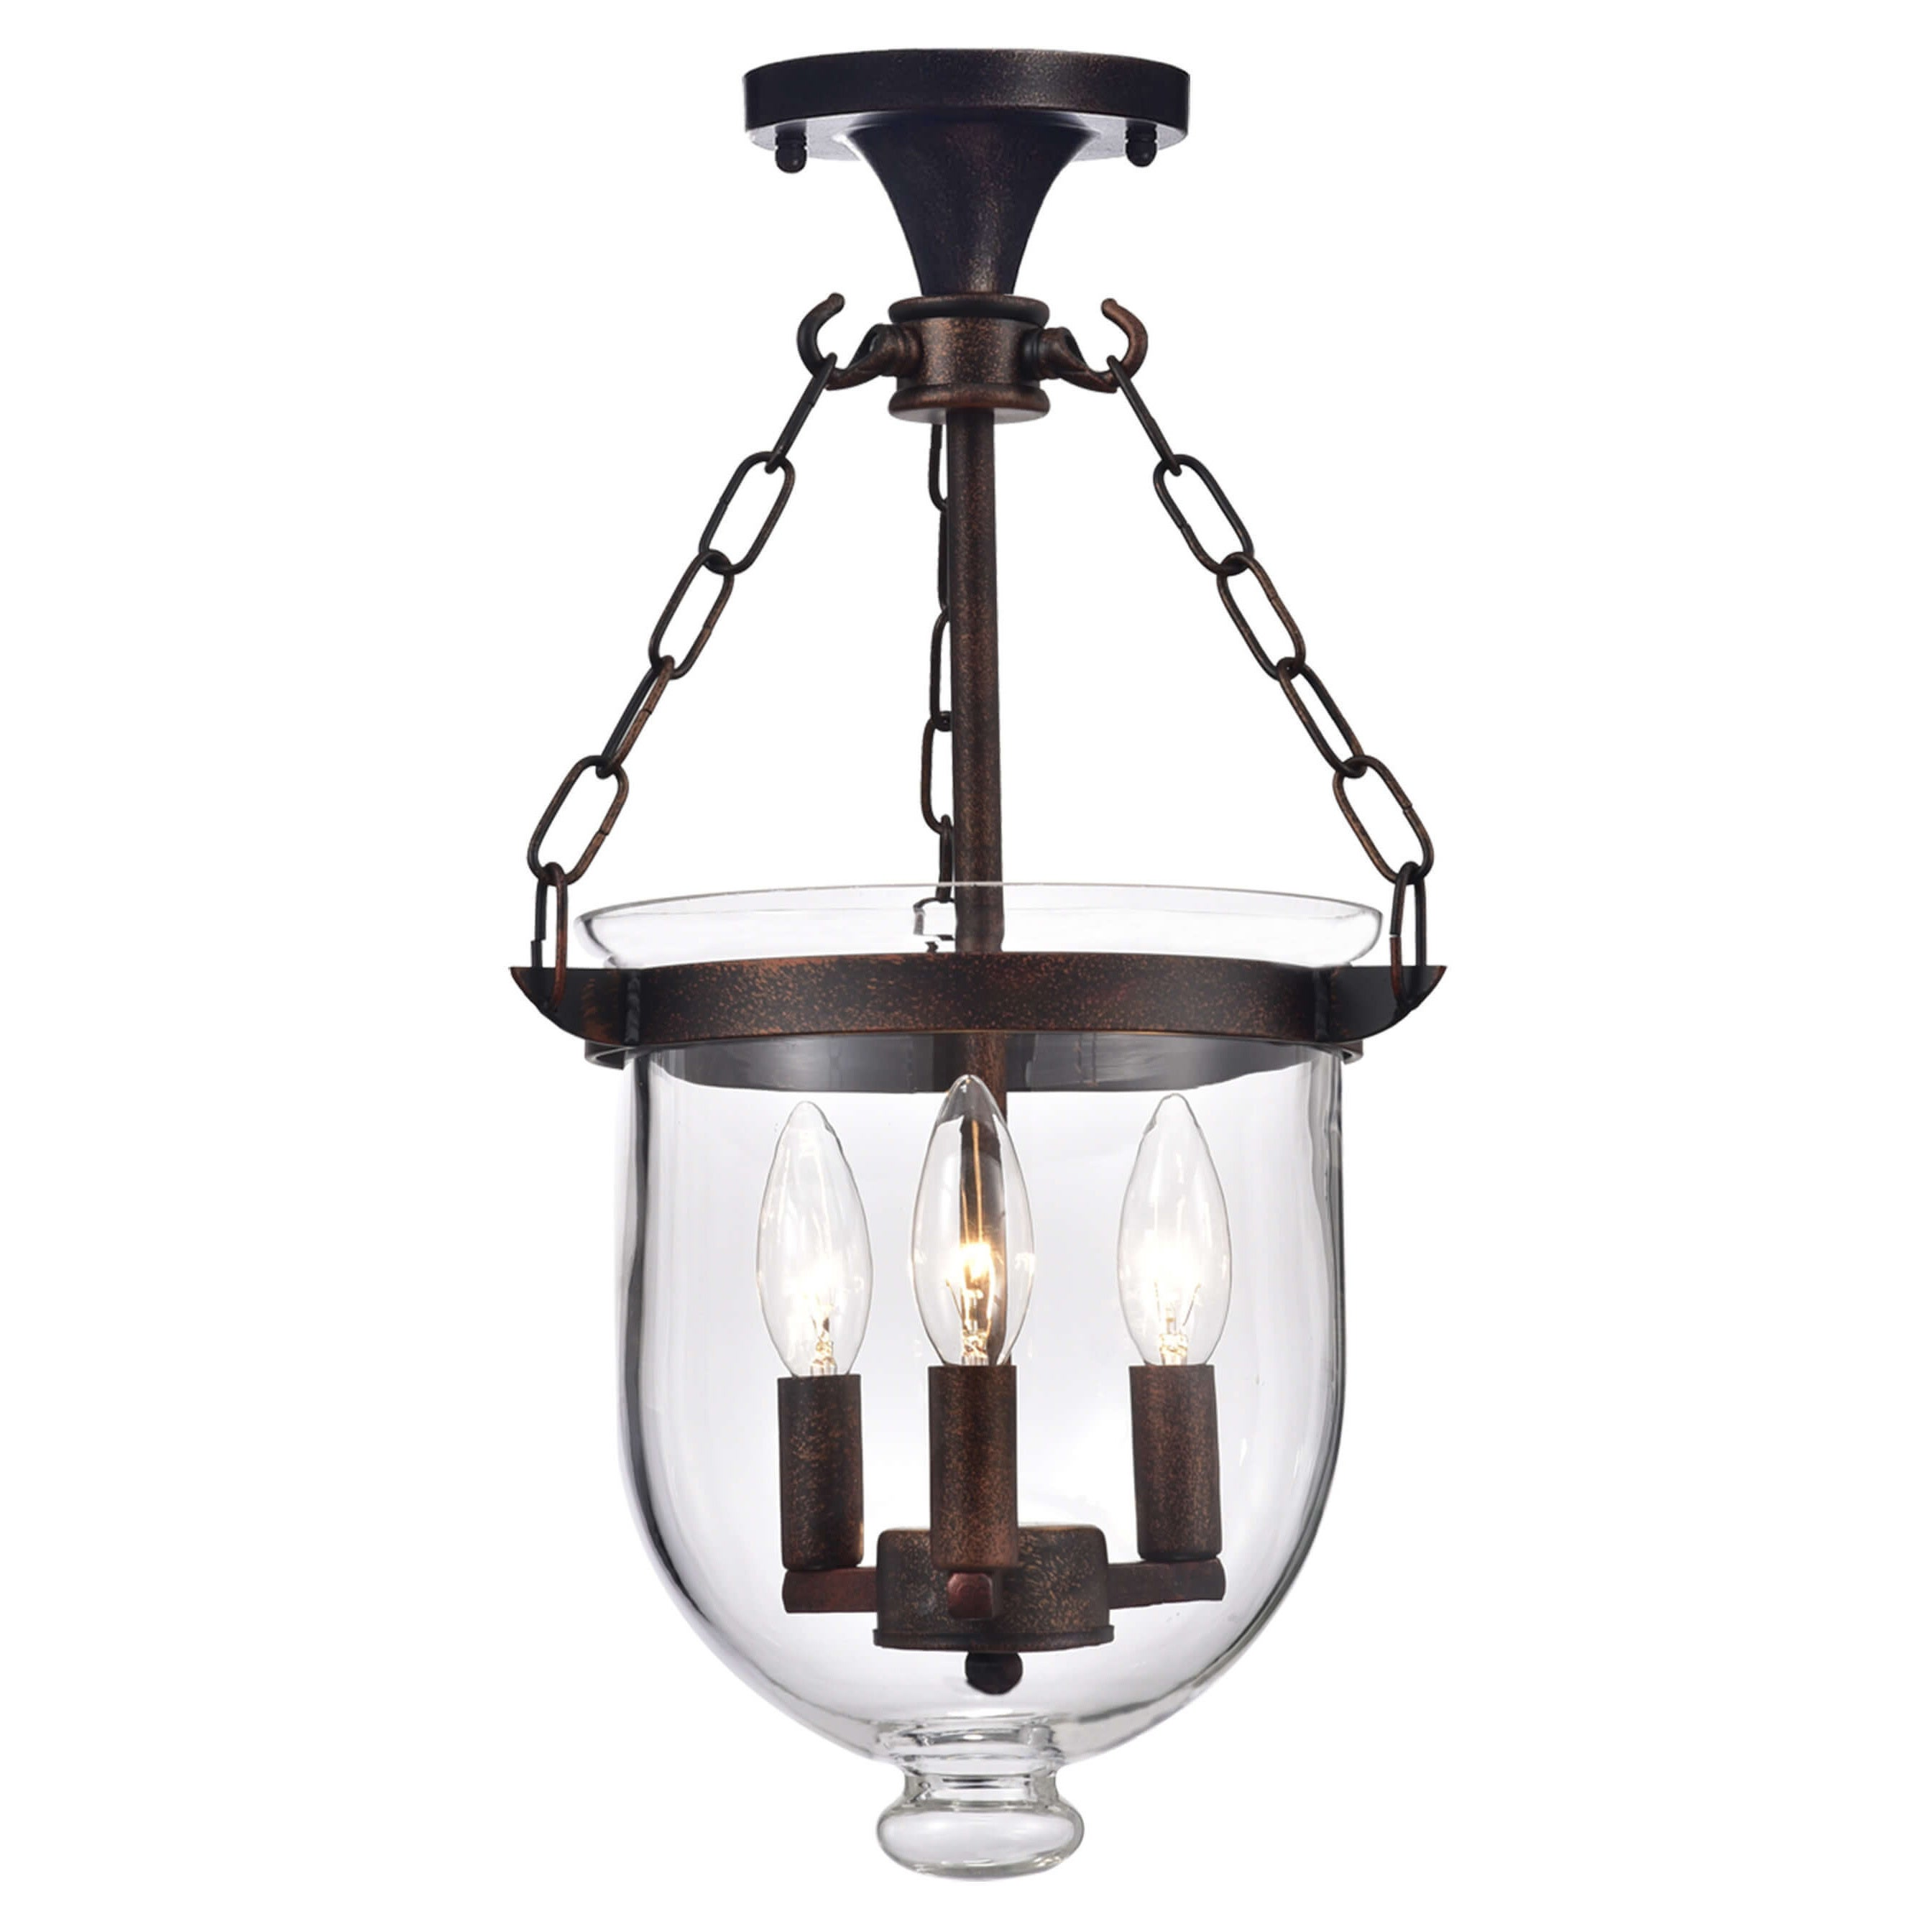 Copper Grove Antique Copper Bell Jar Glass Lantern Chandelier Overstock 20253924